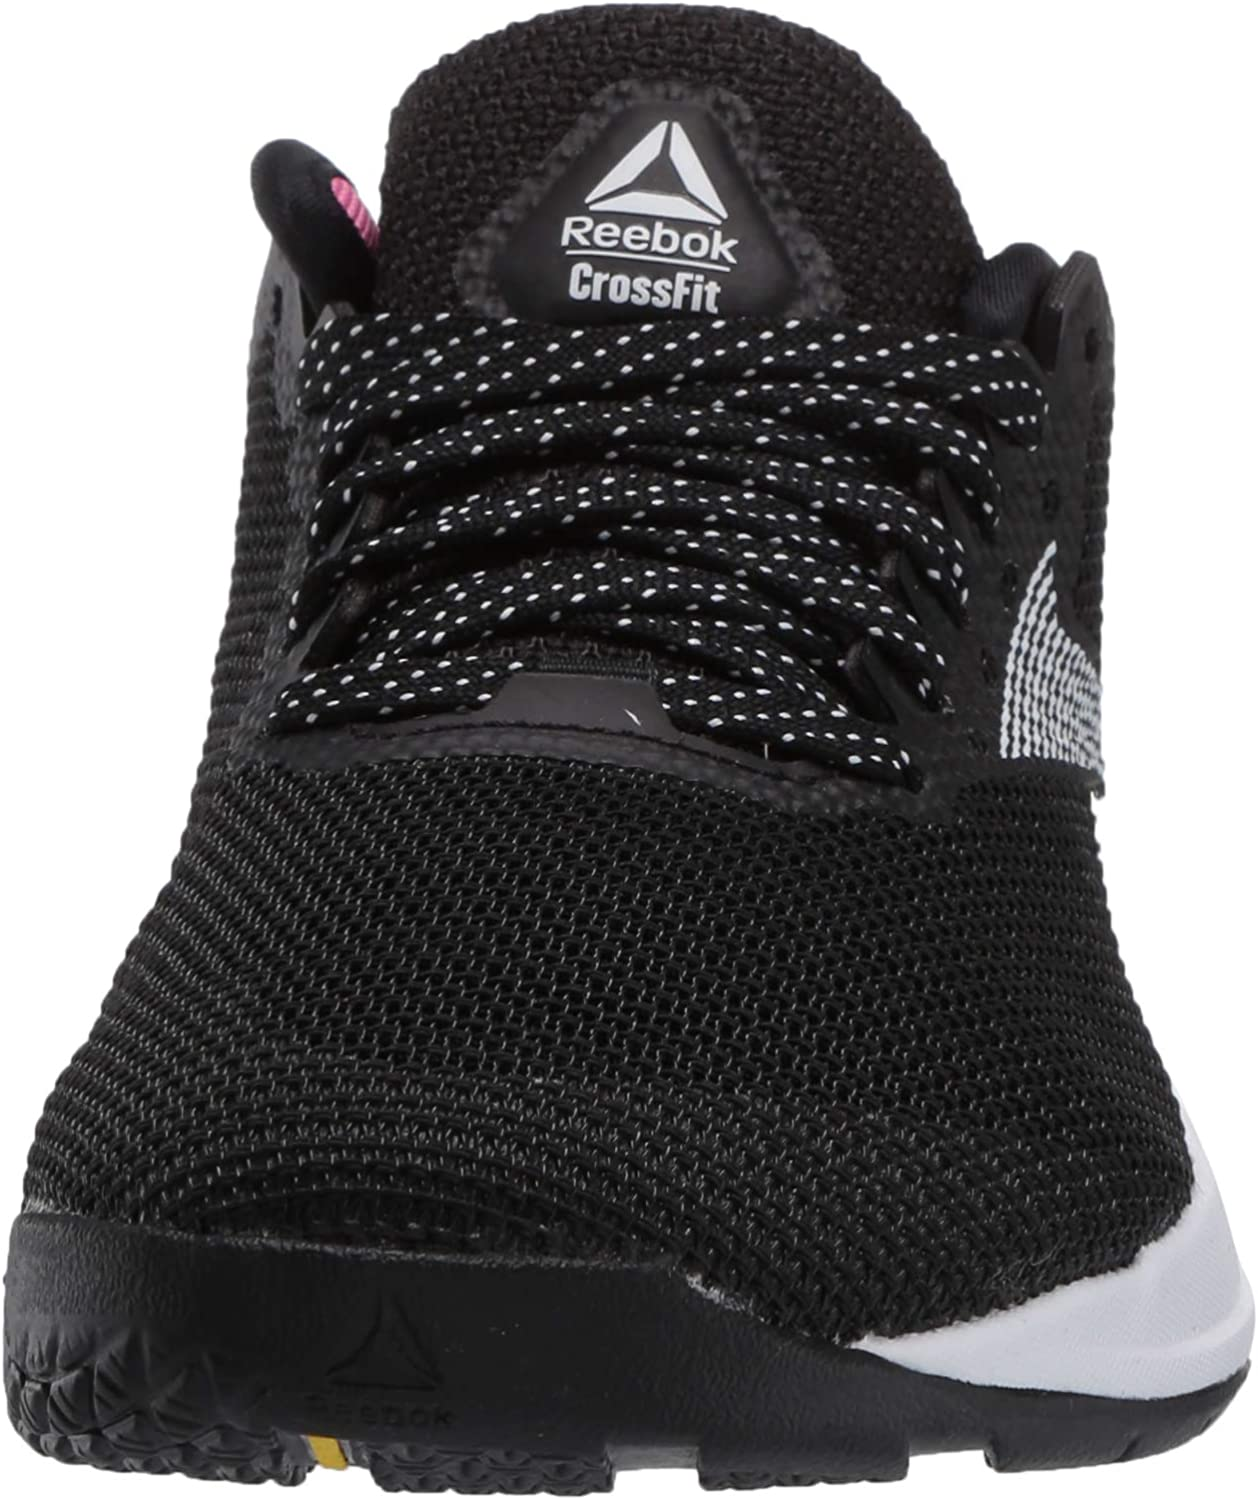 tema Magistrado Equipo  Amazon.com: Reebok Nano 9 Cross Trainer - Zapatillas para mujer: Shoes